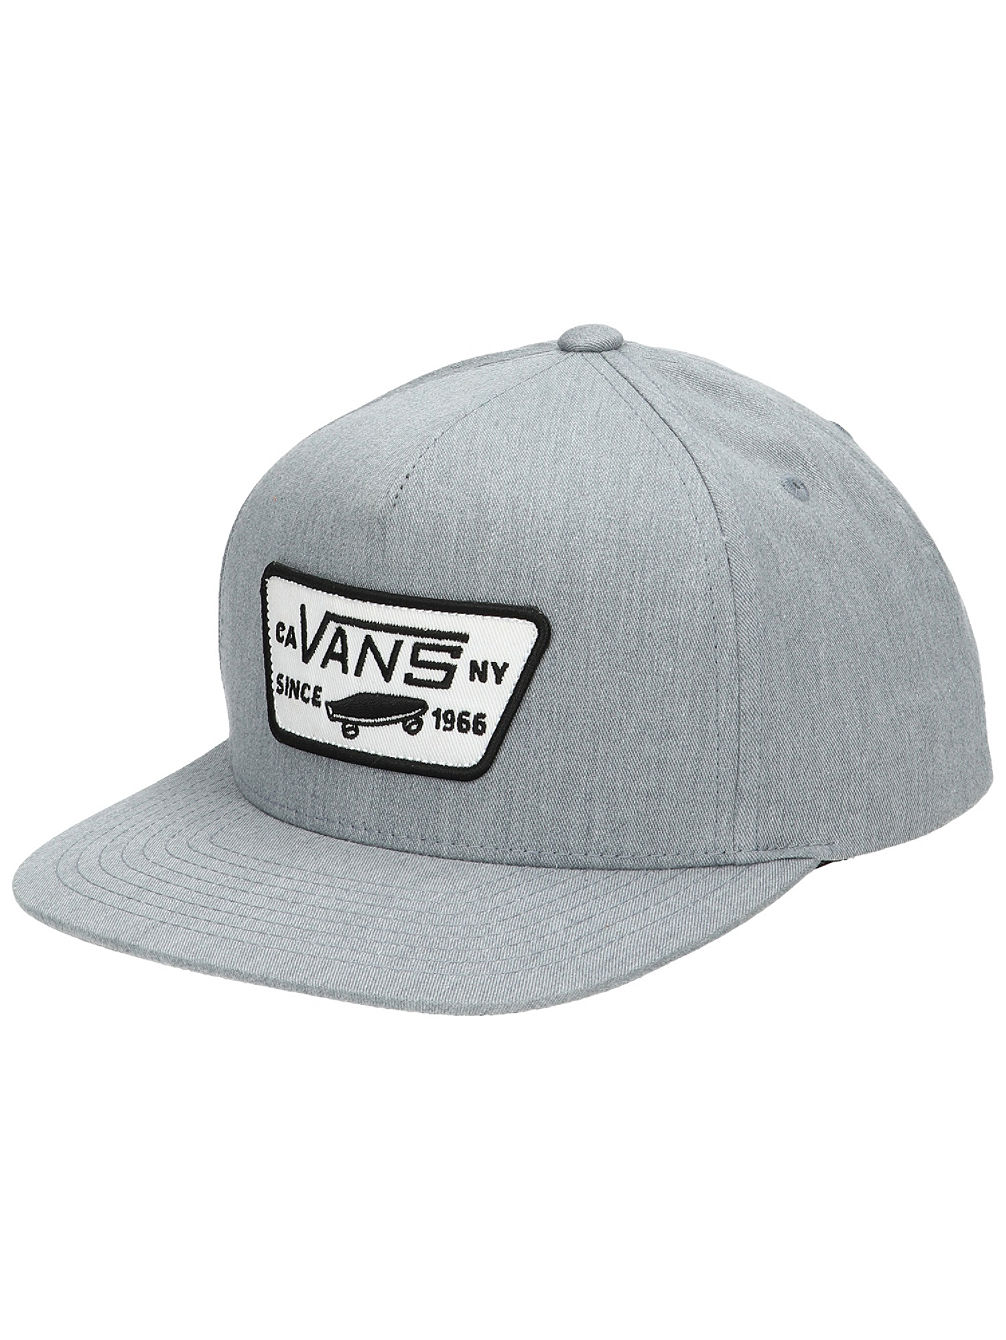 Full Patch Snapback Cap Youth